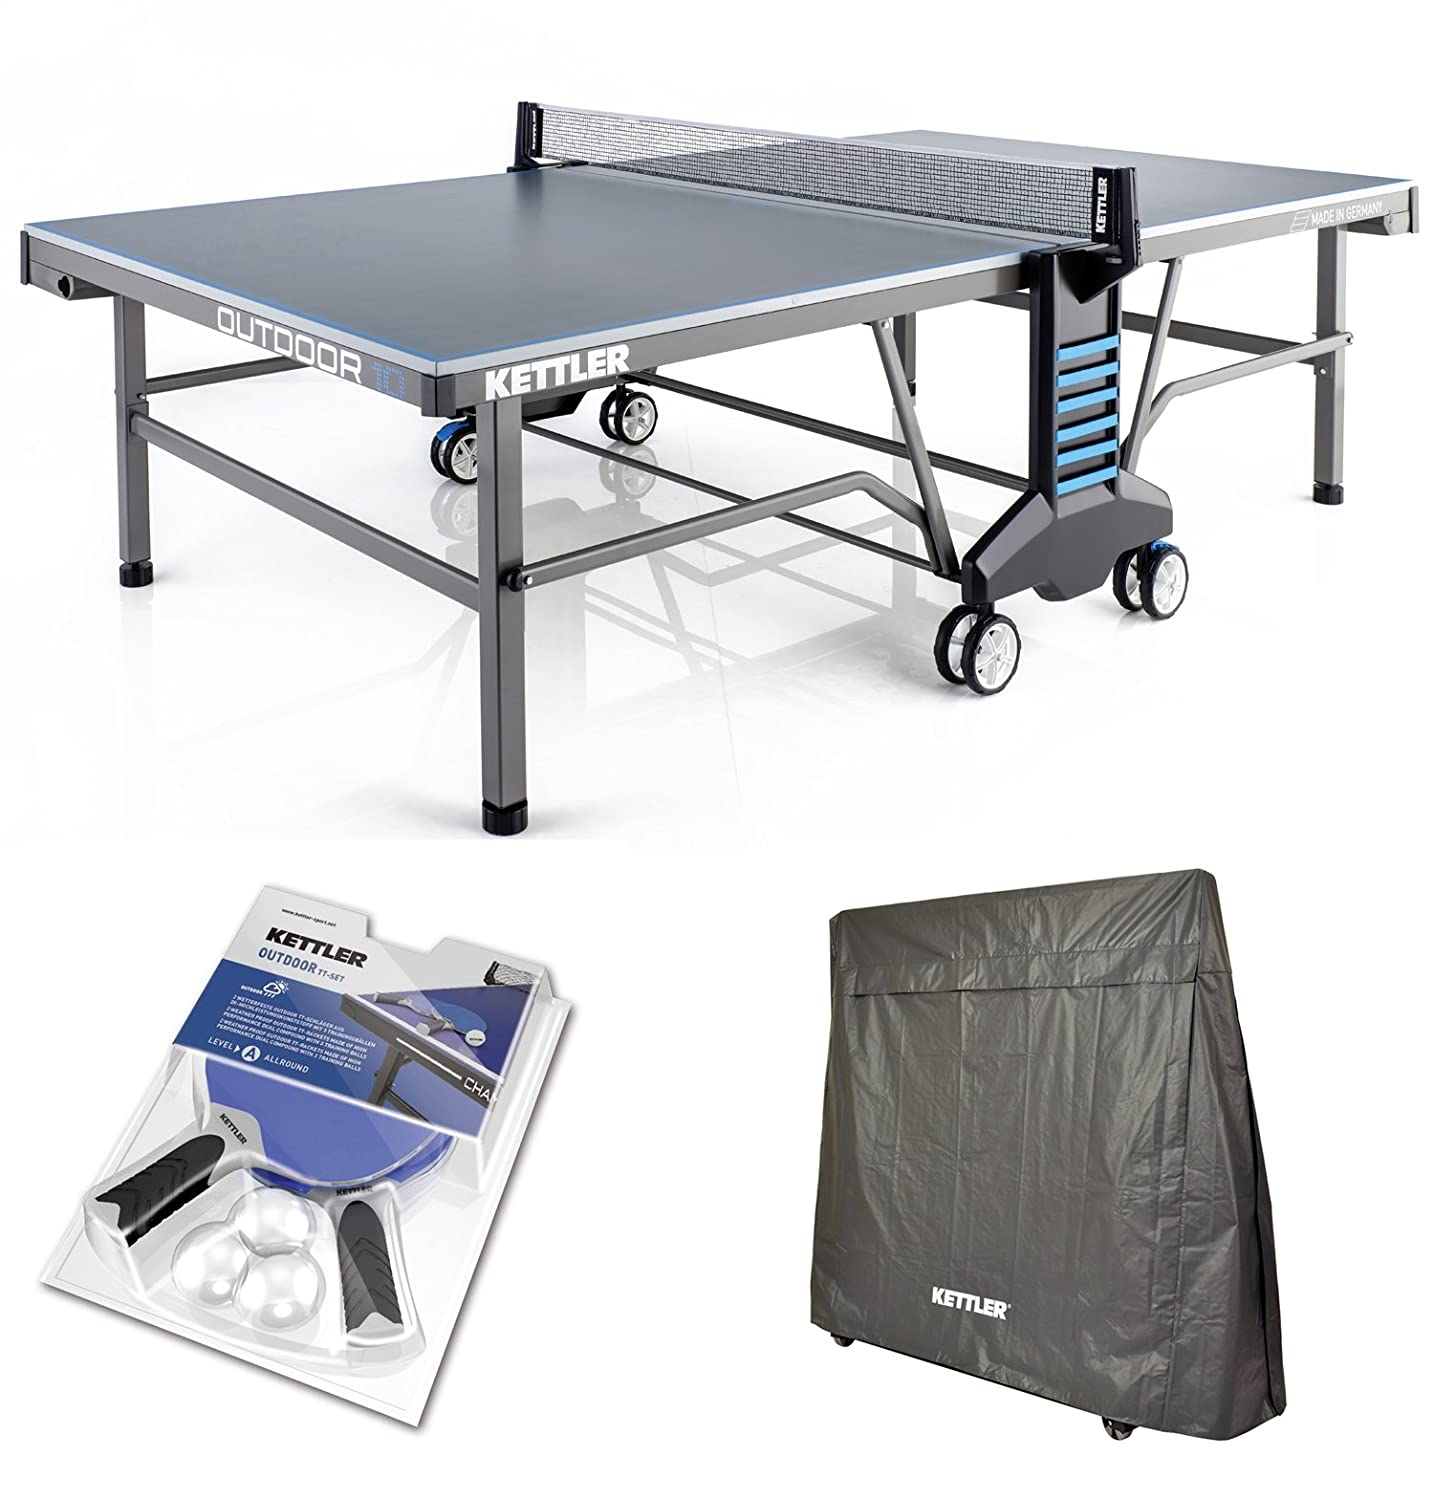 Amazoncom KETTLER Outdoor 10 Table Tennis Table wAccessories